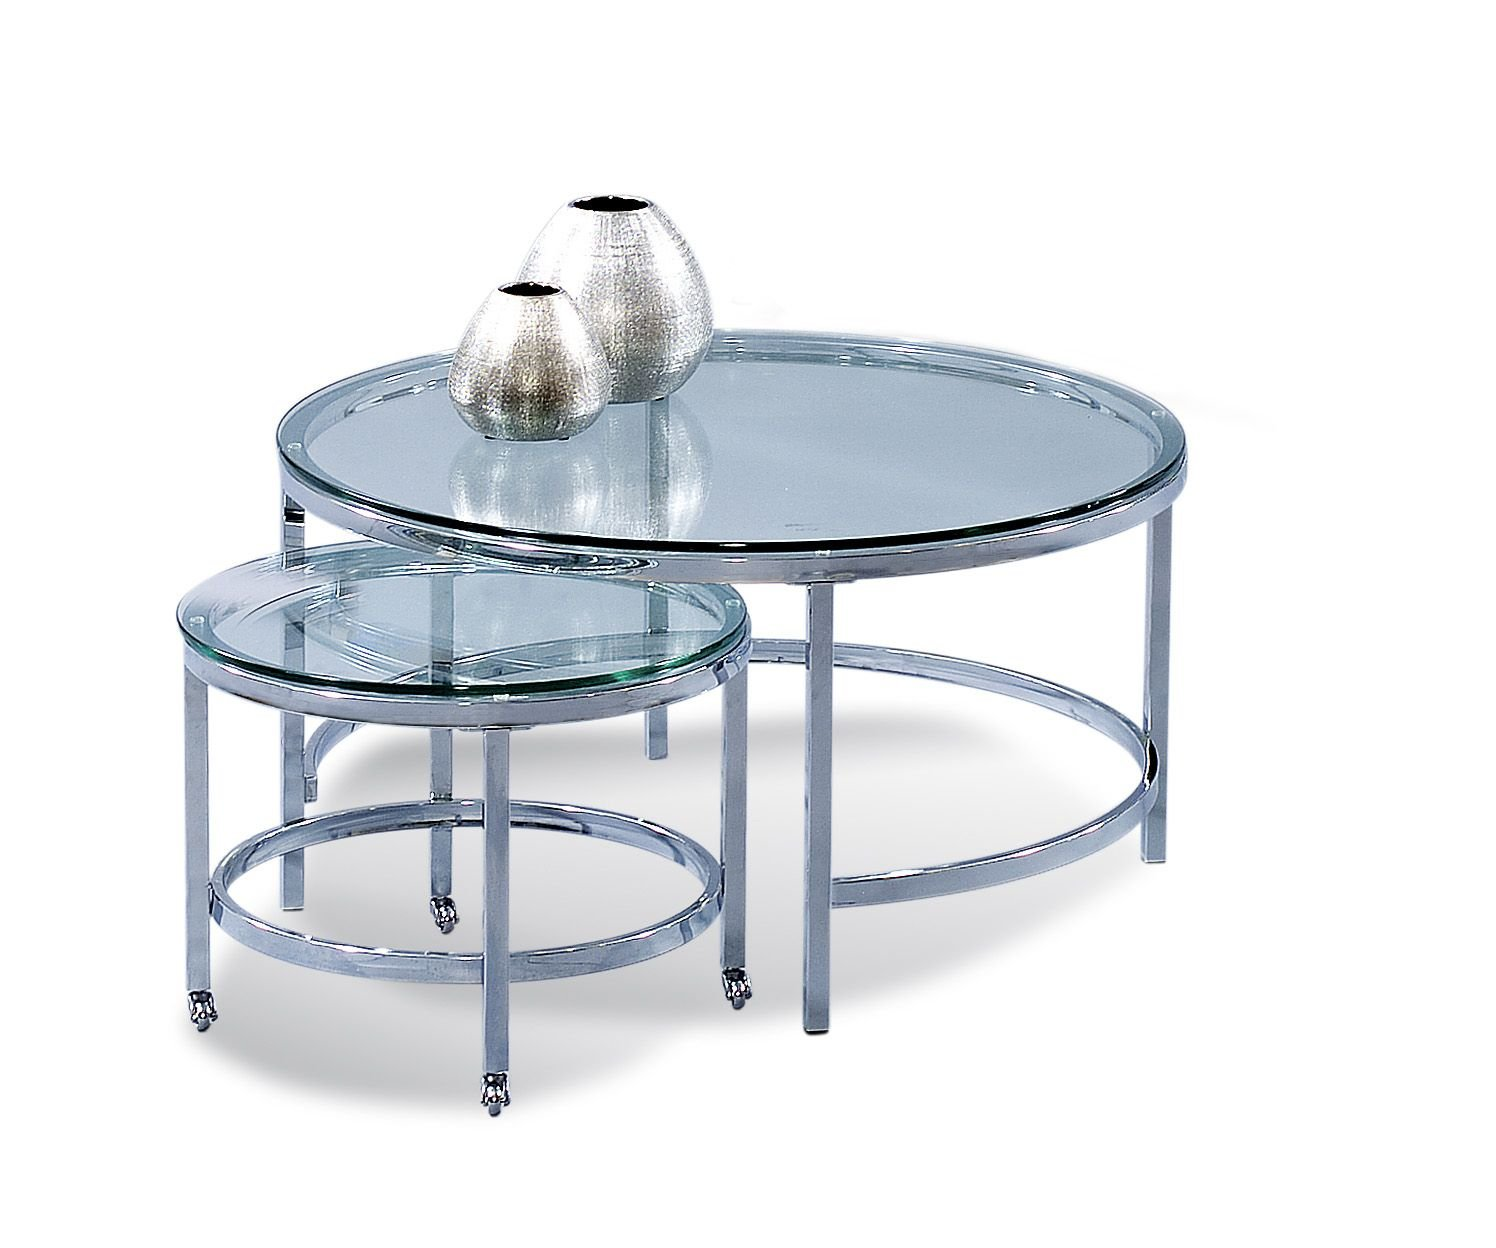 amazon com glass top round cocktail w nesting table on casters